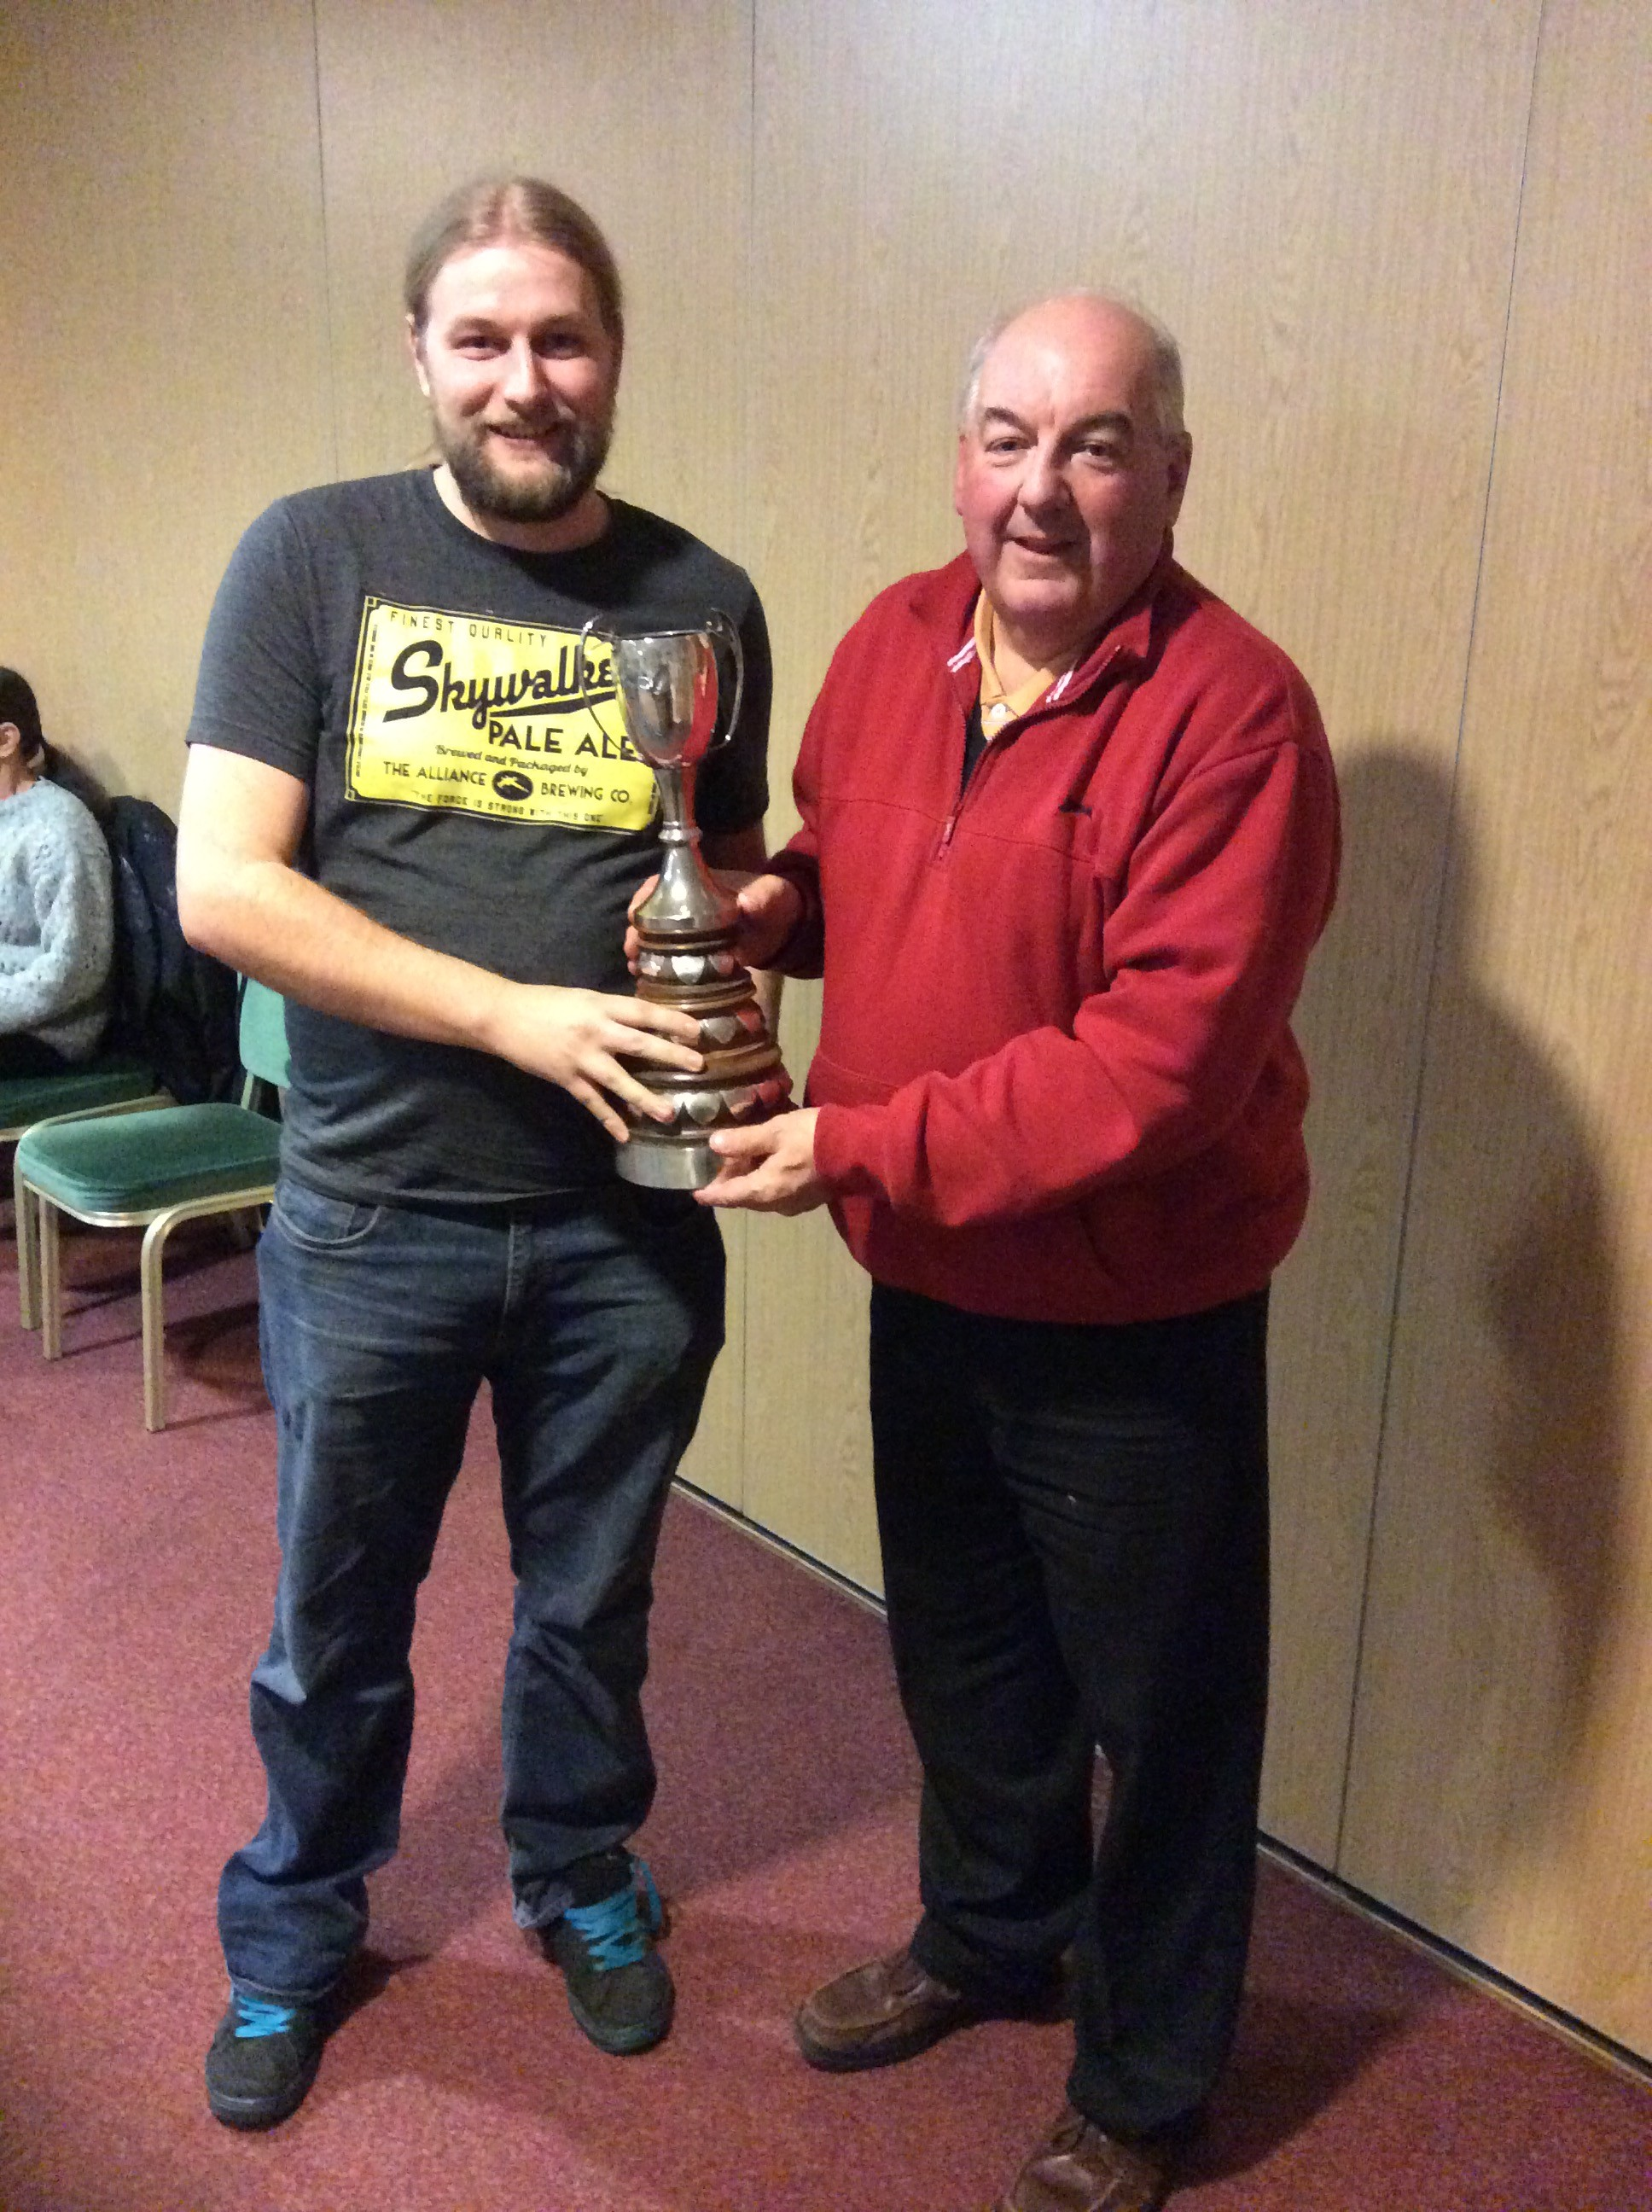 Pratt Cup winner for the Most Improved Player at the Club - Sam Leach receiving the prestigious award from the Club Chairman.